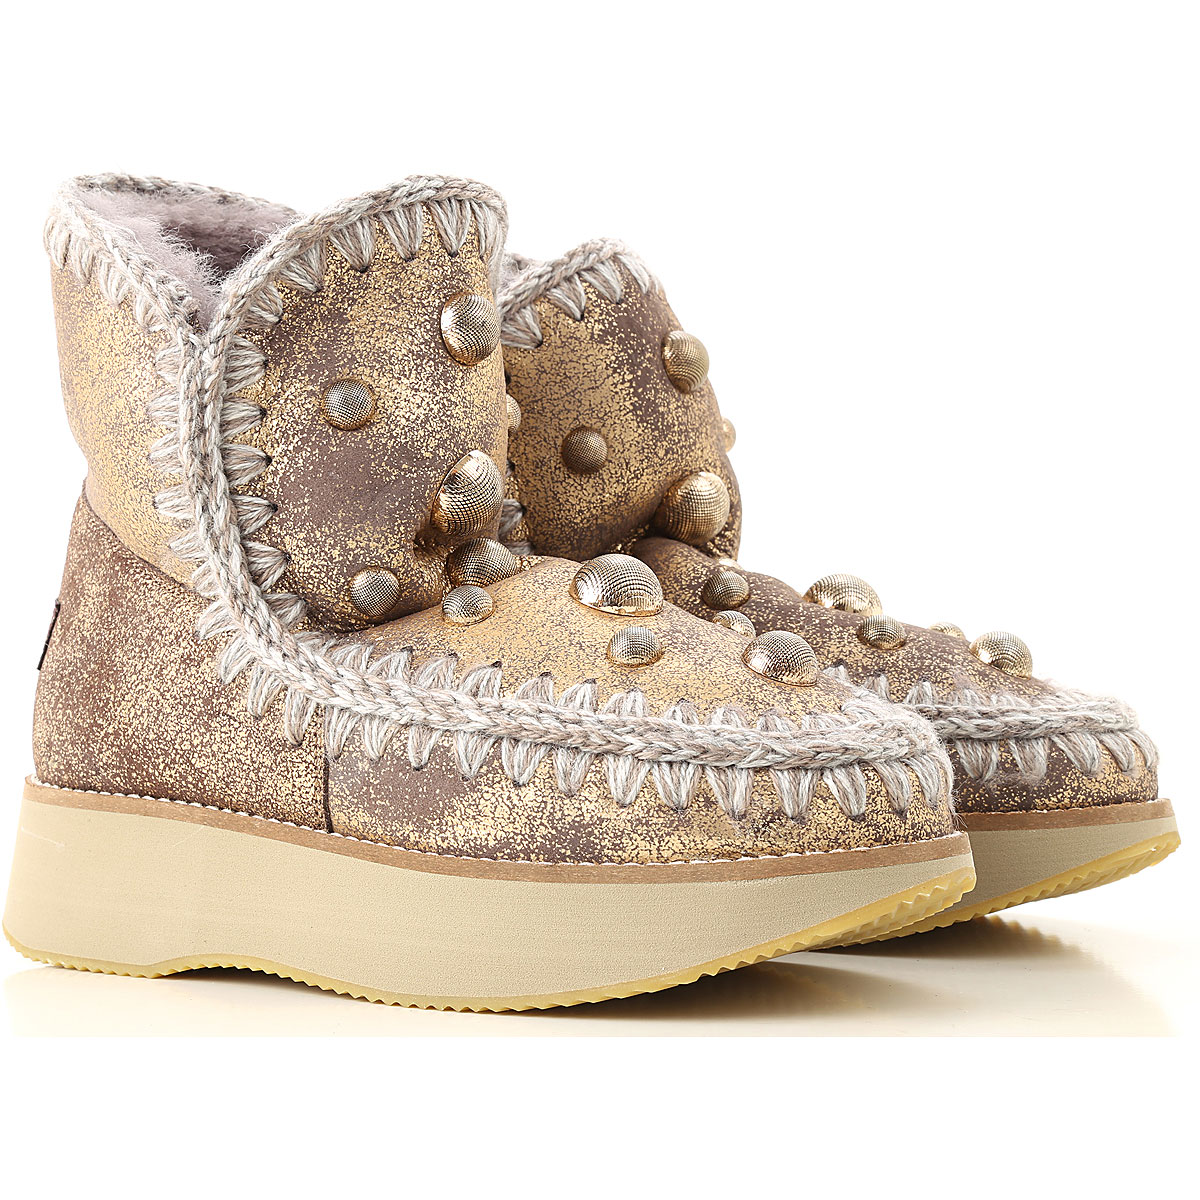 Image of Mou Boots for Women, Booties, Bronze, Leather, 2017, EUR 36 - UK 3 - USA 5.5 EUR 37 - UK 4 - USA 6.5 EUR 38 - UK 5 - USA 7.5 EUR 39 - UK 6 - USA 8.5 EUR 40 - UK 7 - USA 9.5